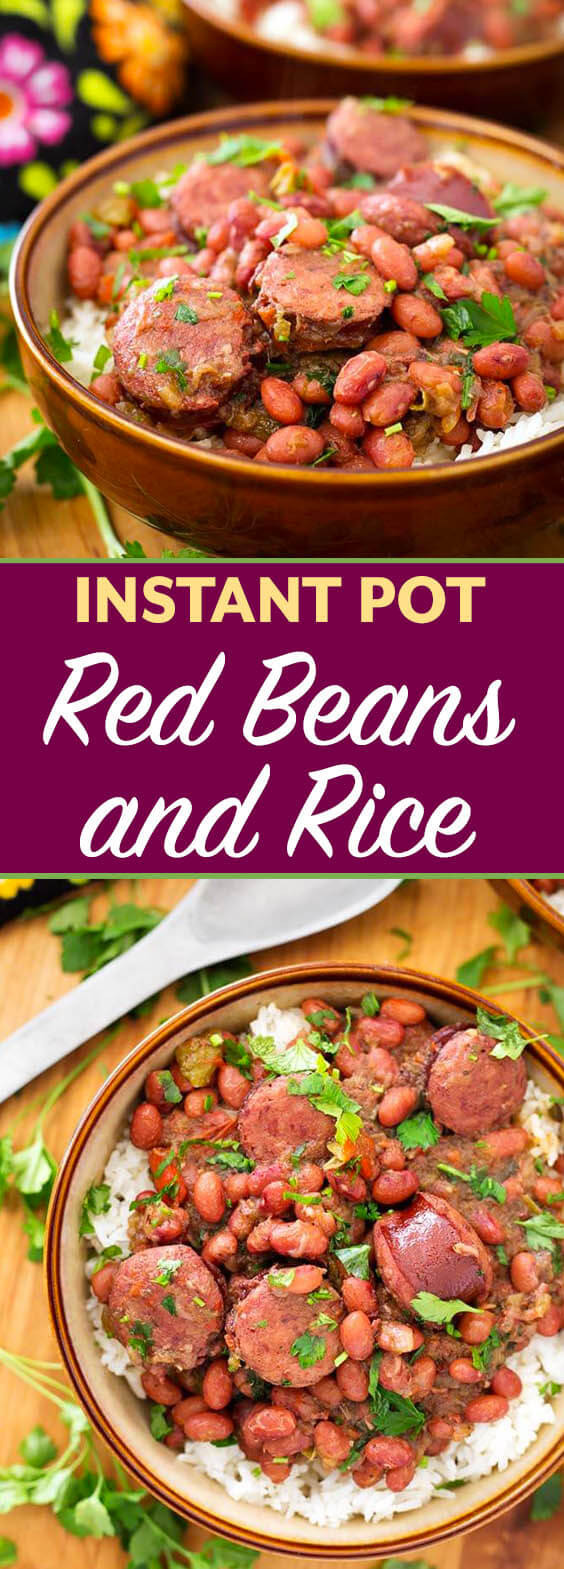 Red Beans And Rice Instant Pot  Instant Pot Red Beans and Rice with Sausage